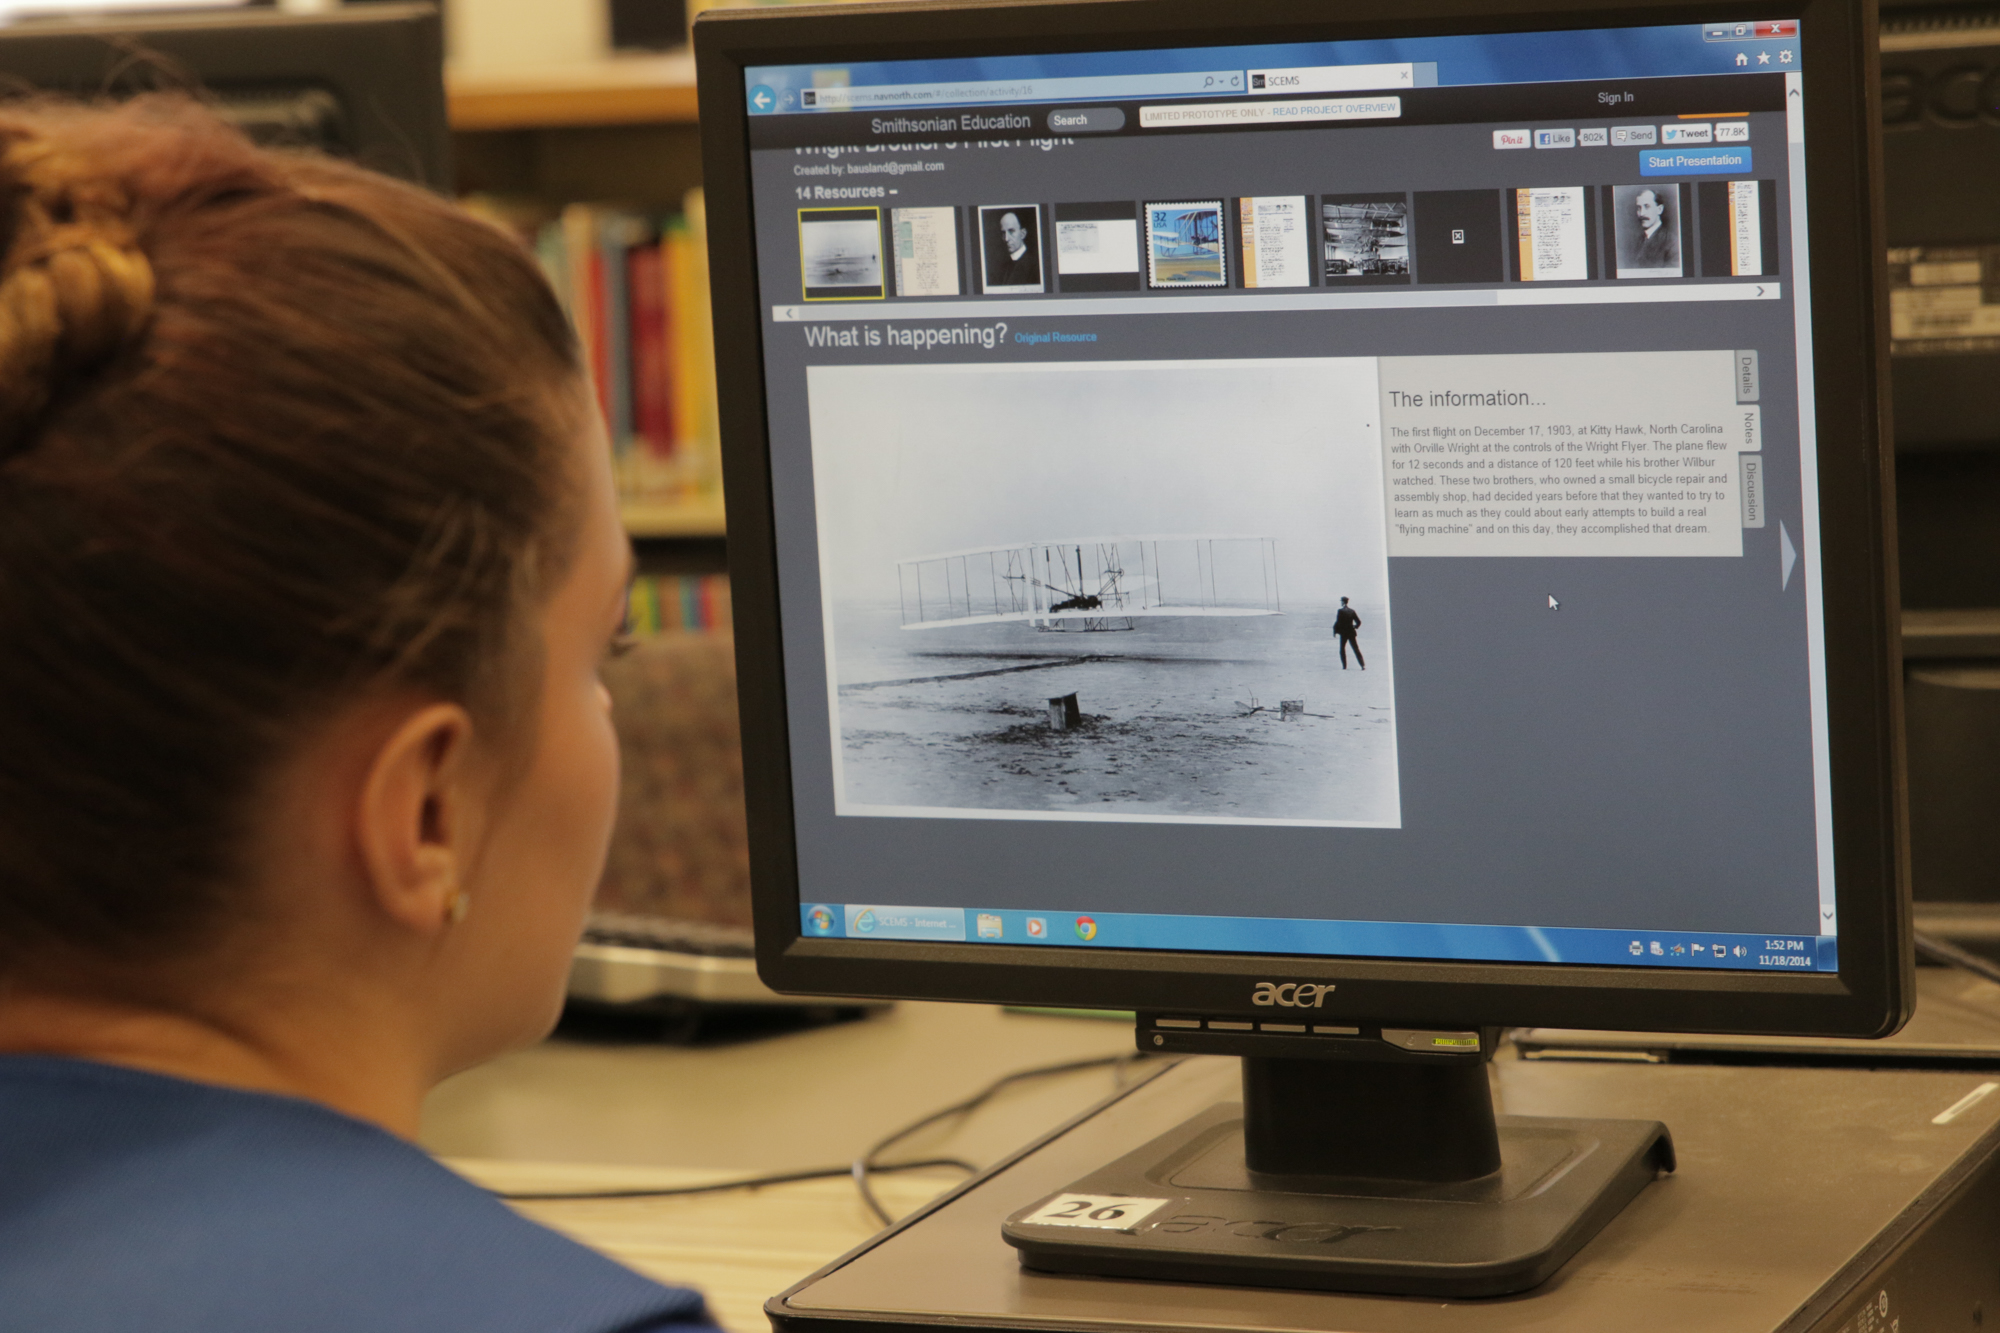 Child looking at monitor showing Wright brothers